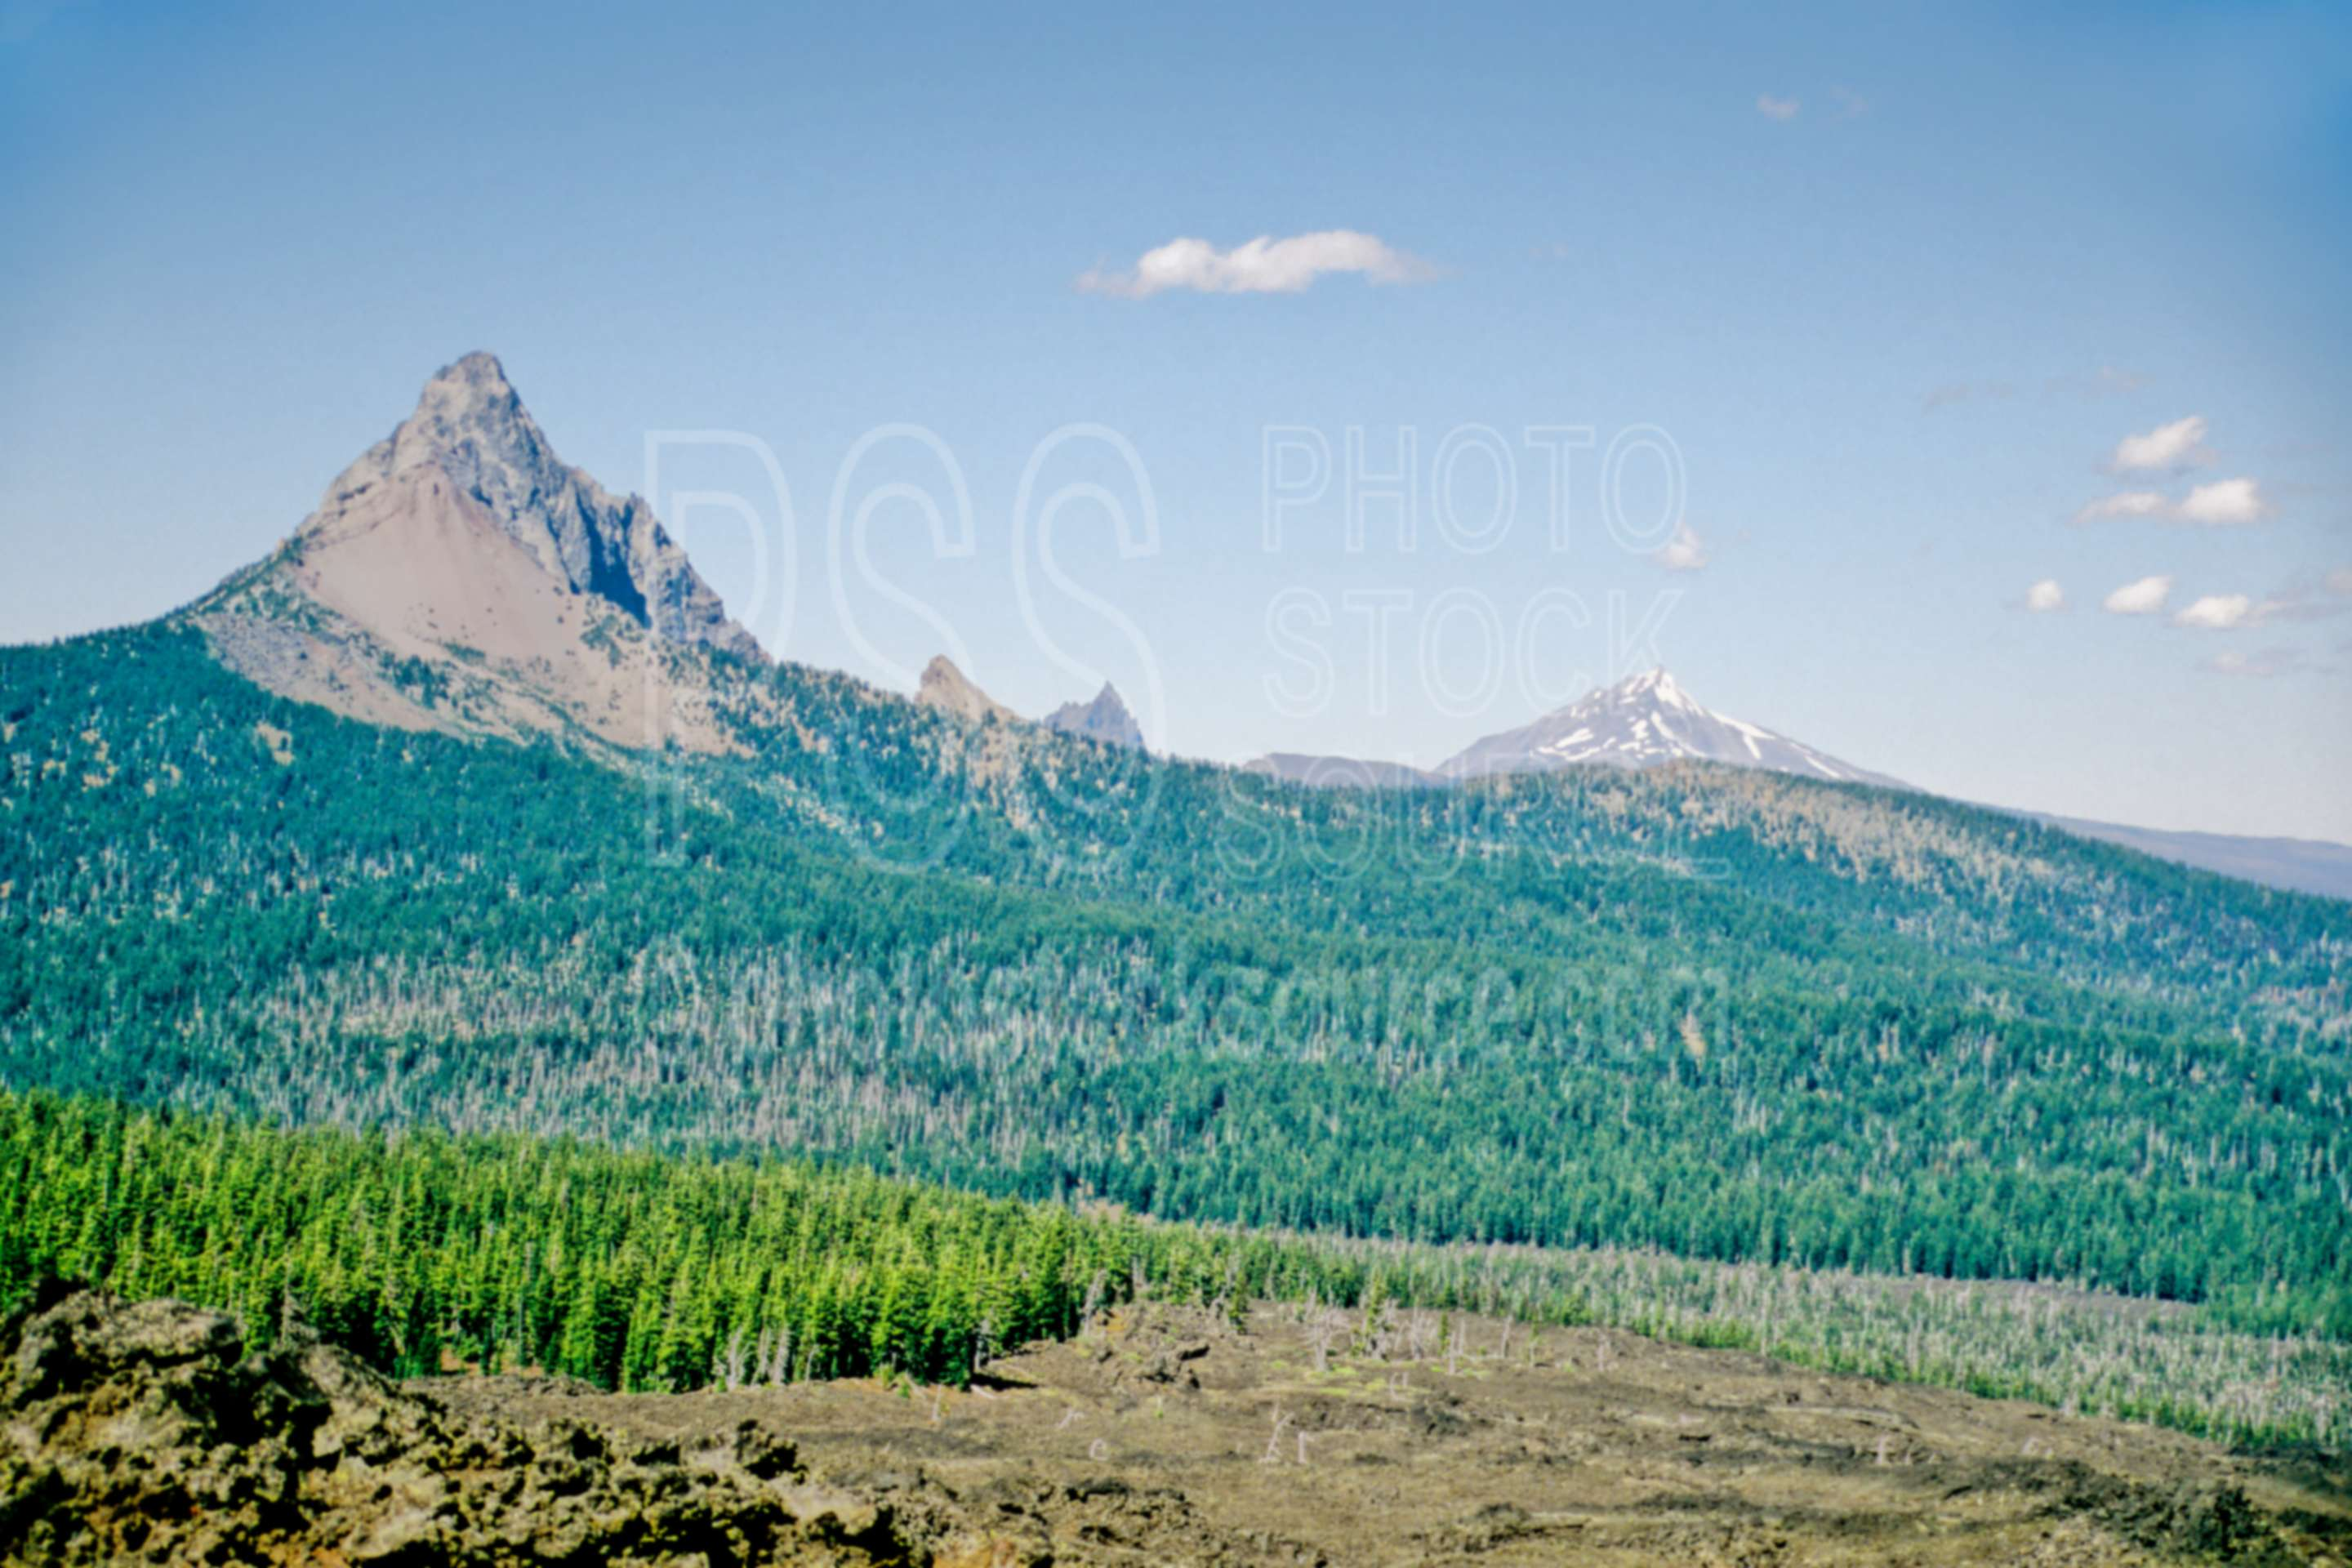 Mt. Washington,lava tube,cave,lava bed,crater,mt. jefferson,mount,usas,mountains